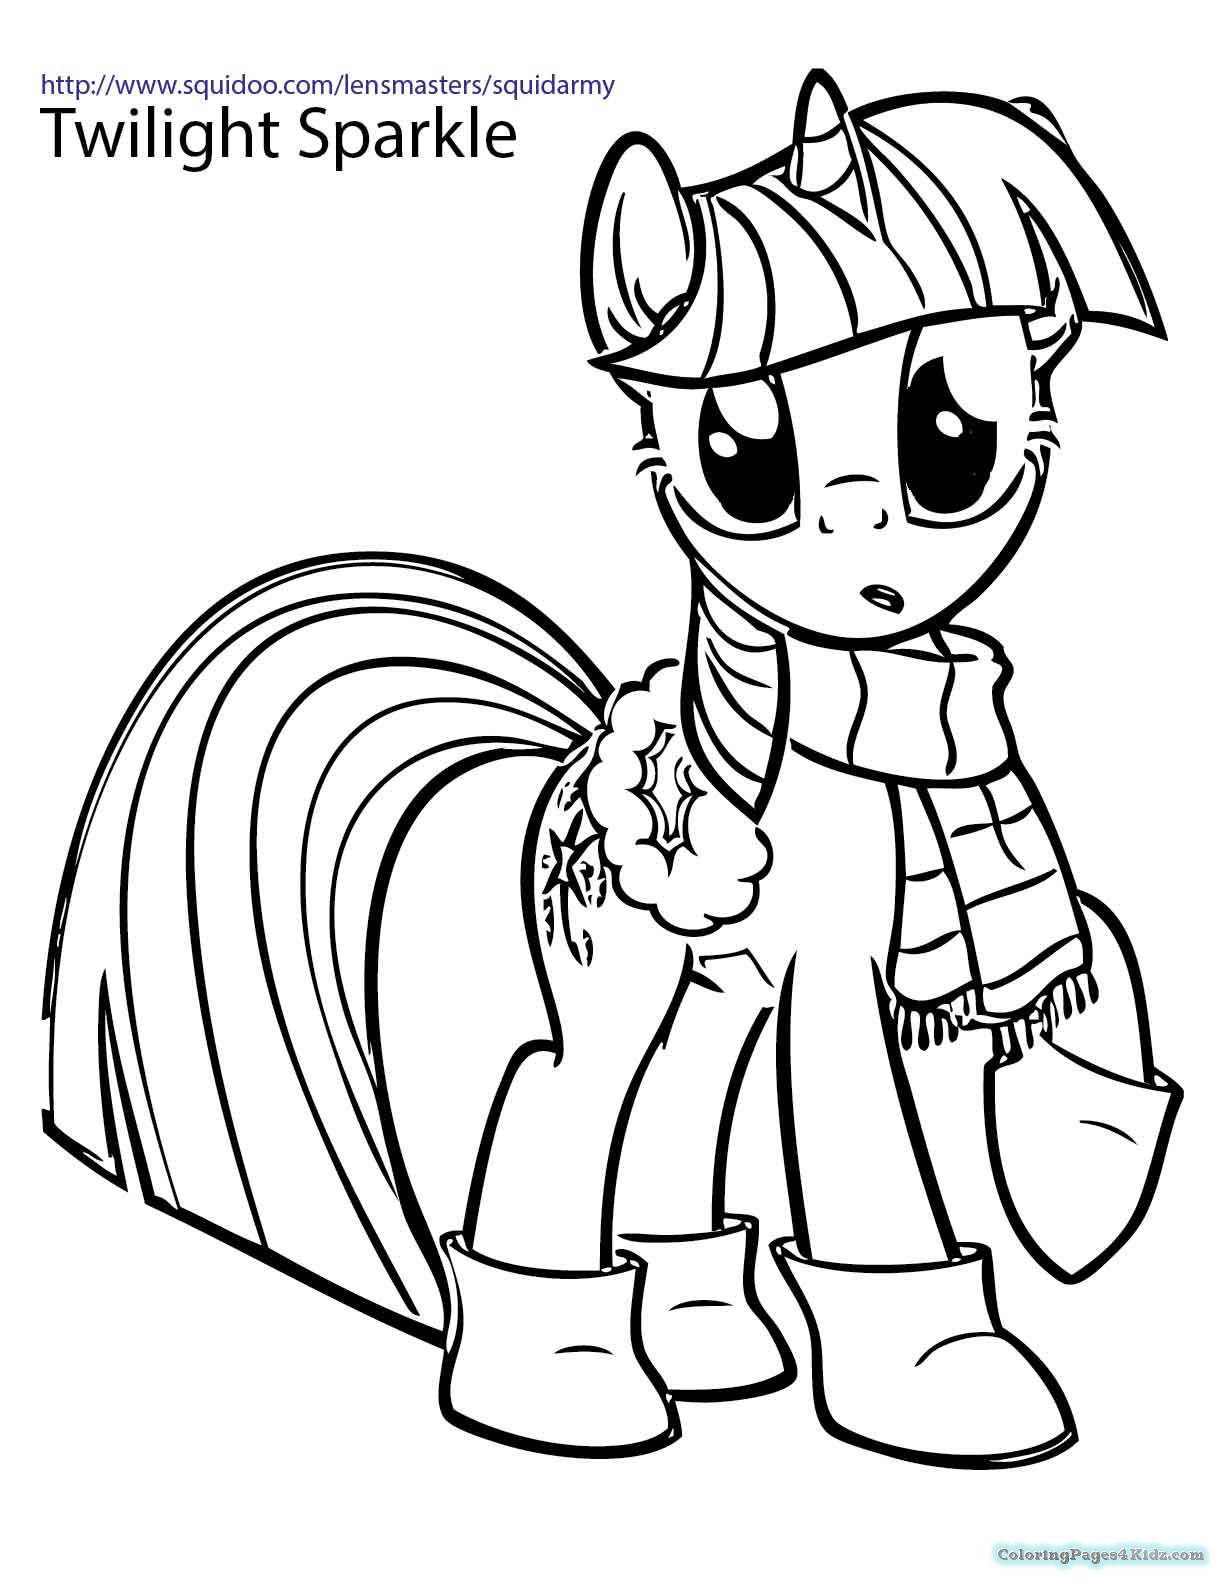 my little pony coloring pages twilight sparkle princess twilight sparkle drawing free download on twilight little my coloring pages sparkle pony